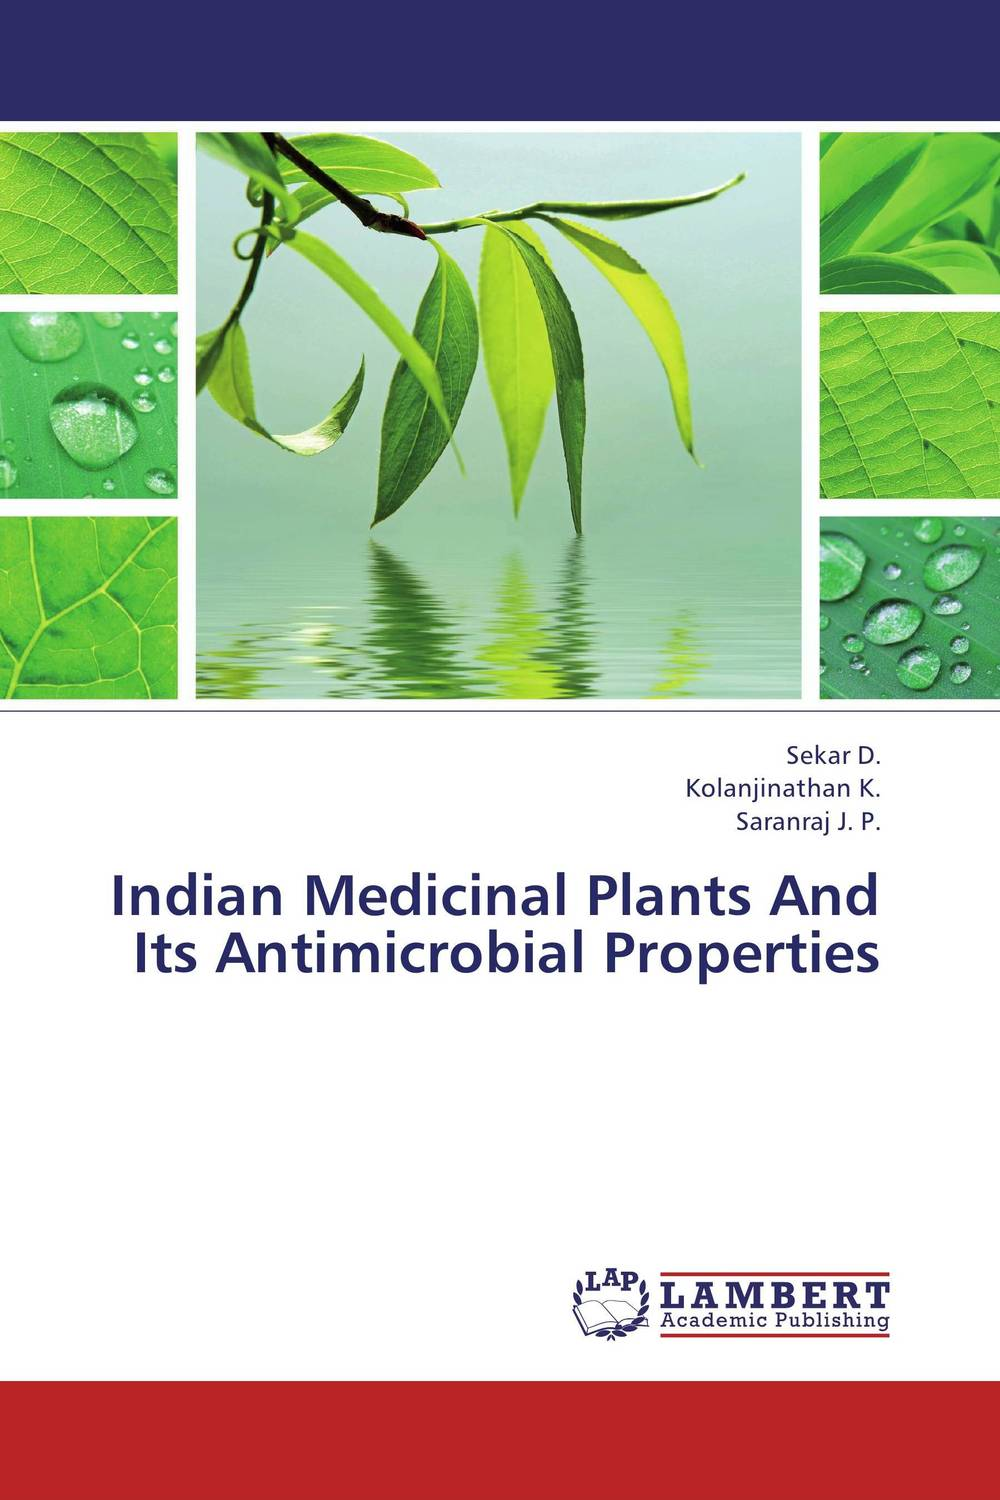 Indian Medicinal Plants And Its Antimicrobial Properties antidiabetic activity of acalypha indica linn